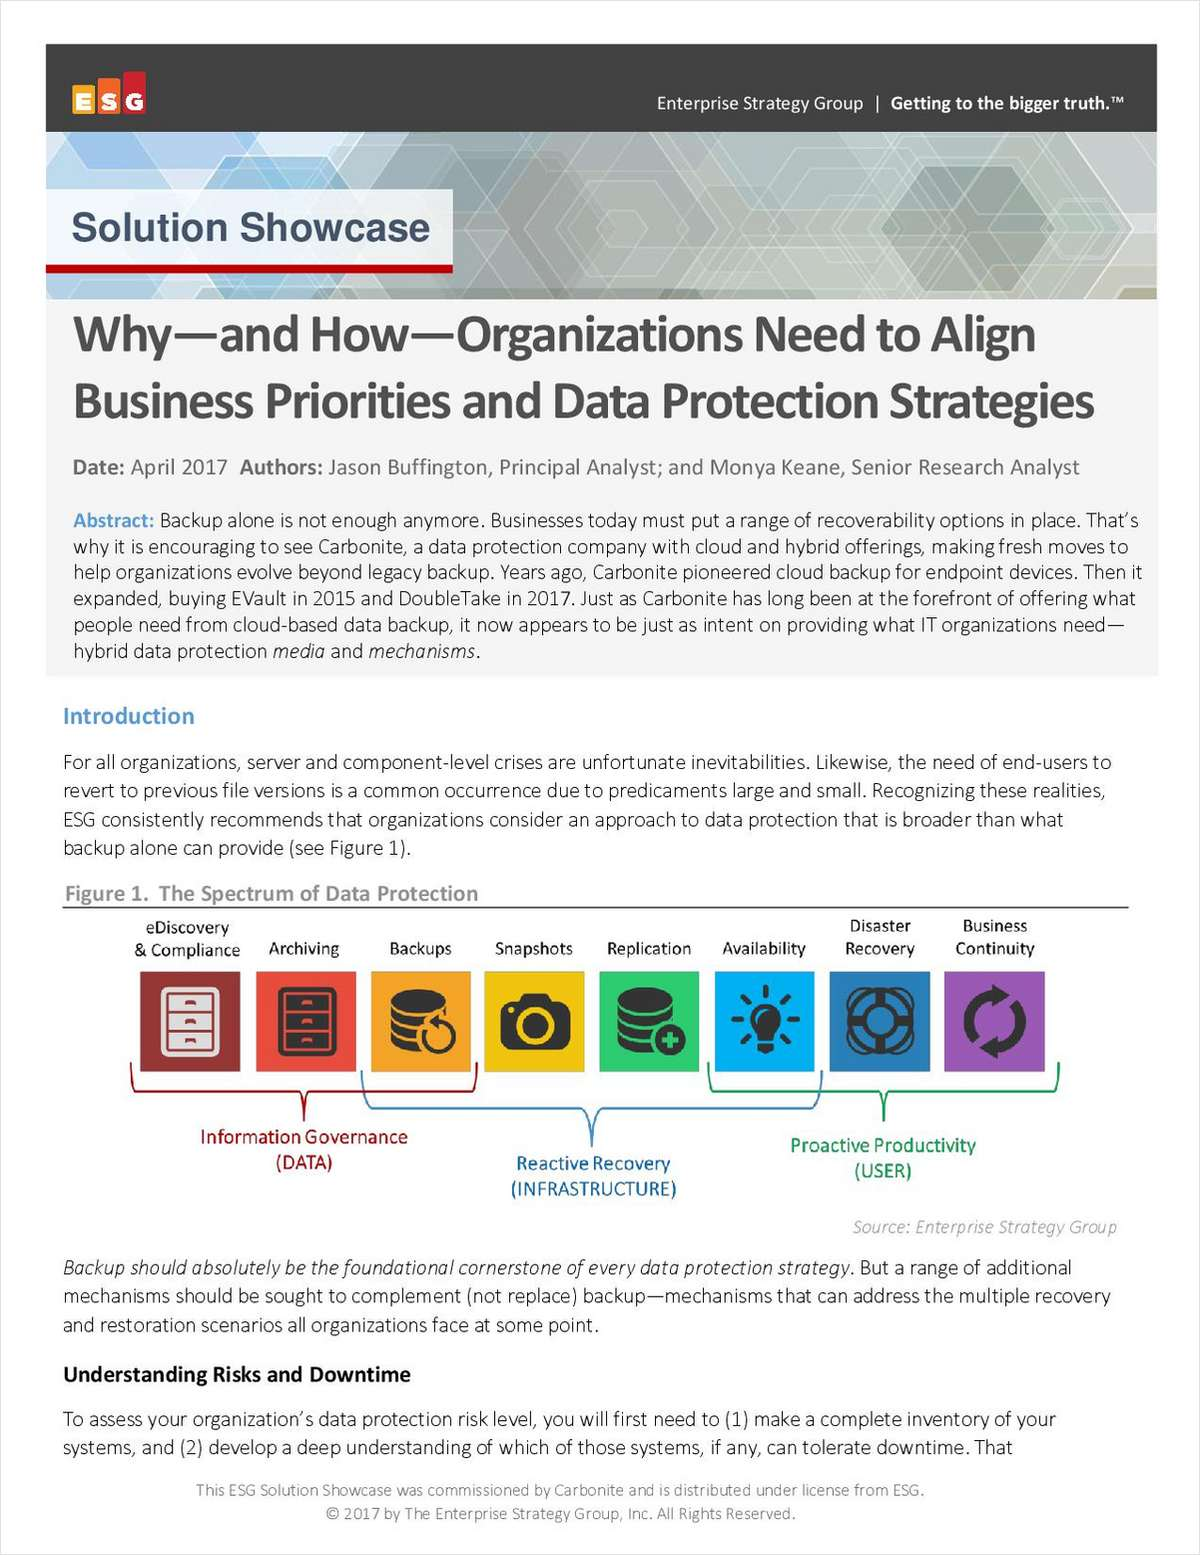 Why and How Organizations Need to Align Business Priorities and Data Protection Strategies